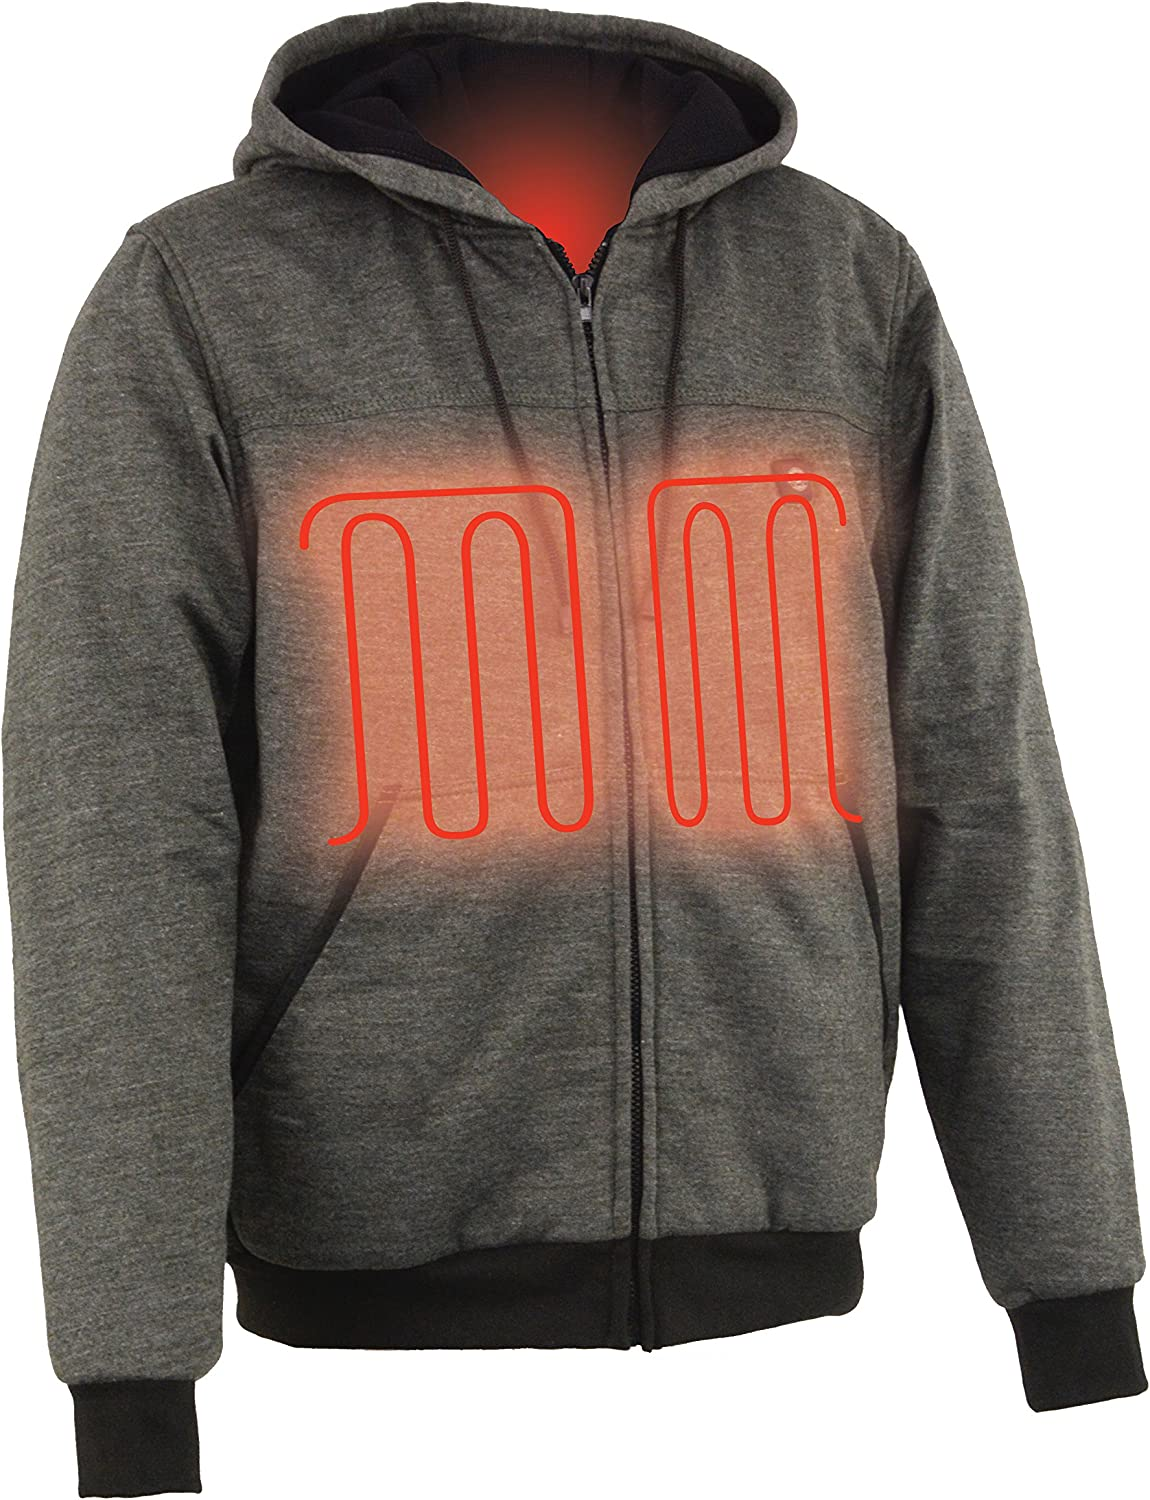 Medium Milwaukee Leather MPM1713 Mens Grey Hoodie with Front and Back Heated Elements